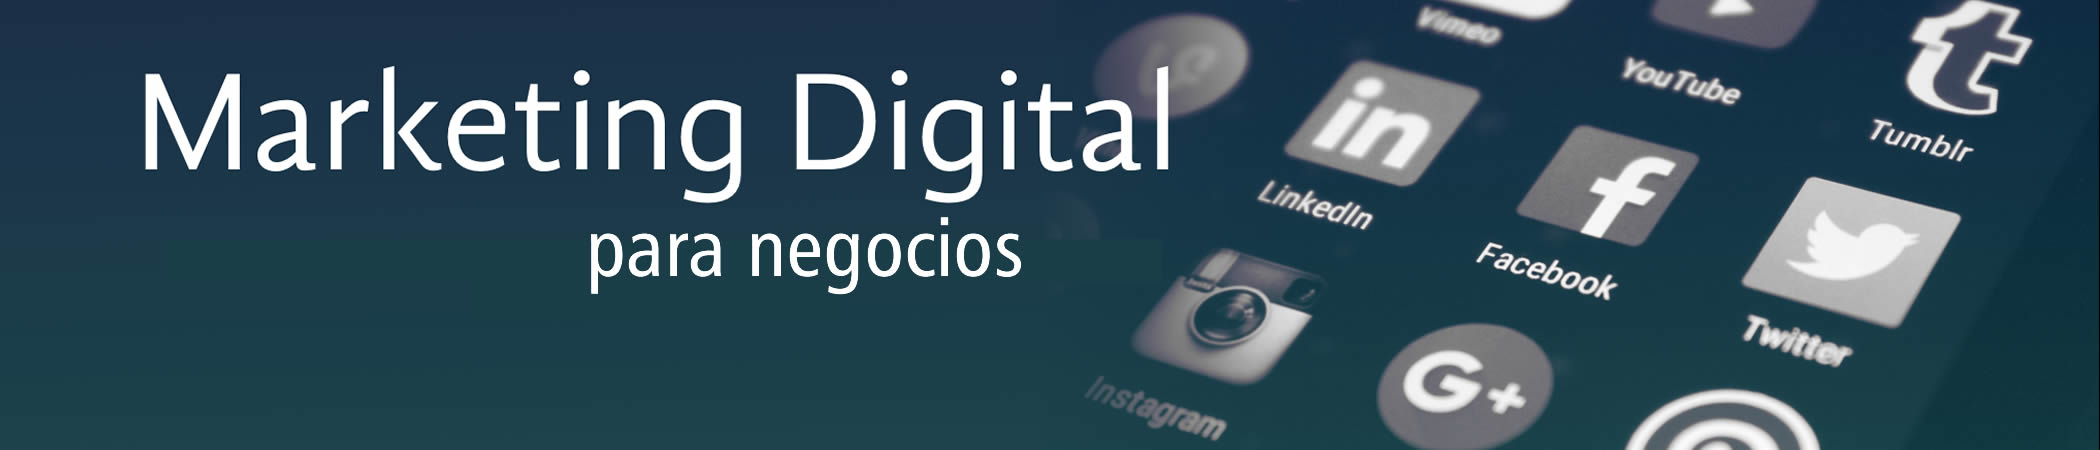 CURSO MARKETING DIGITAL Y REDES SOCIALES PARA NEGOCIOS